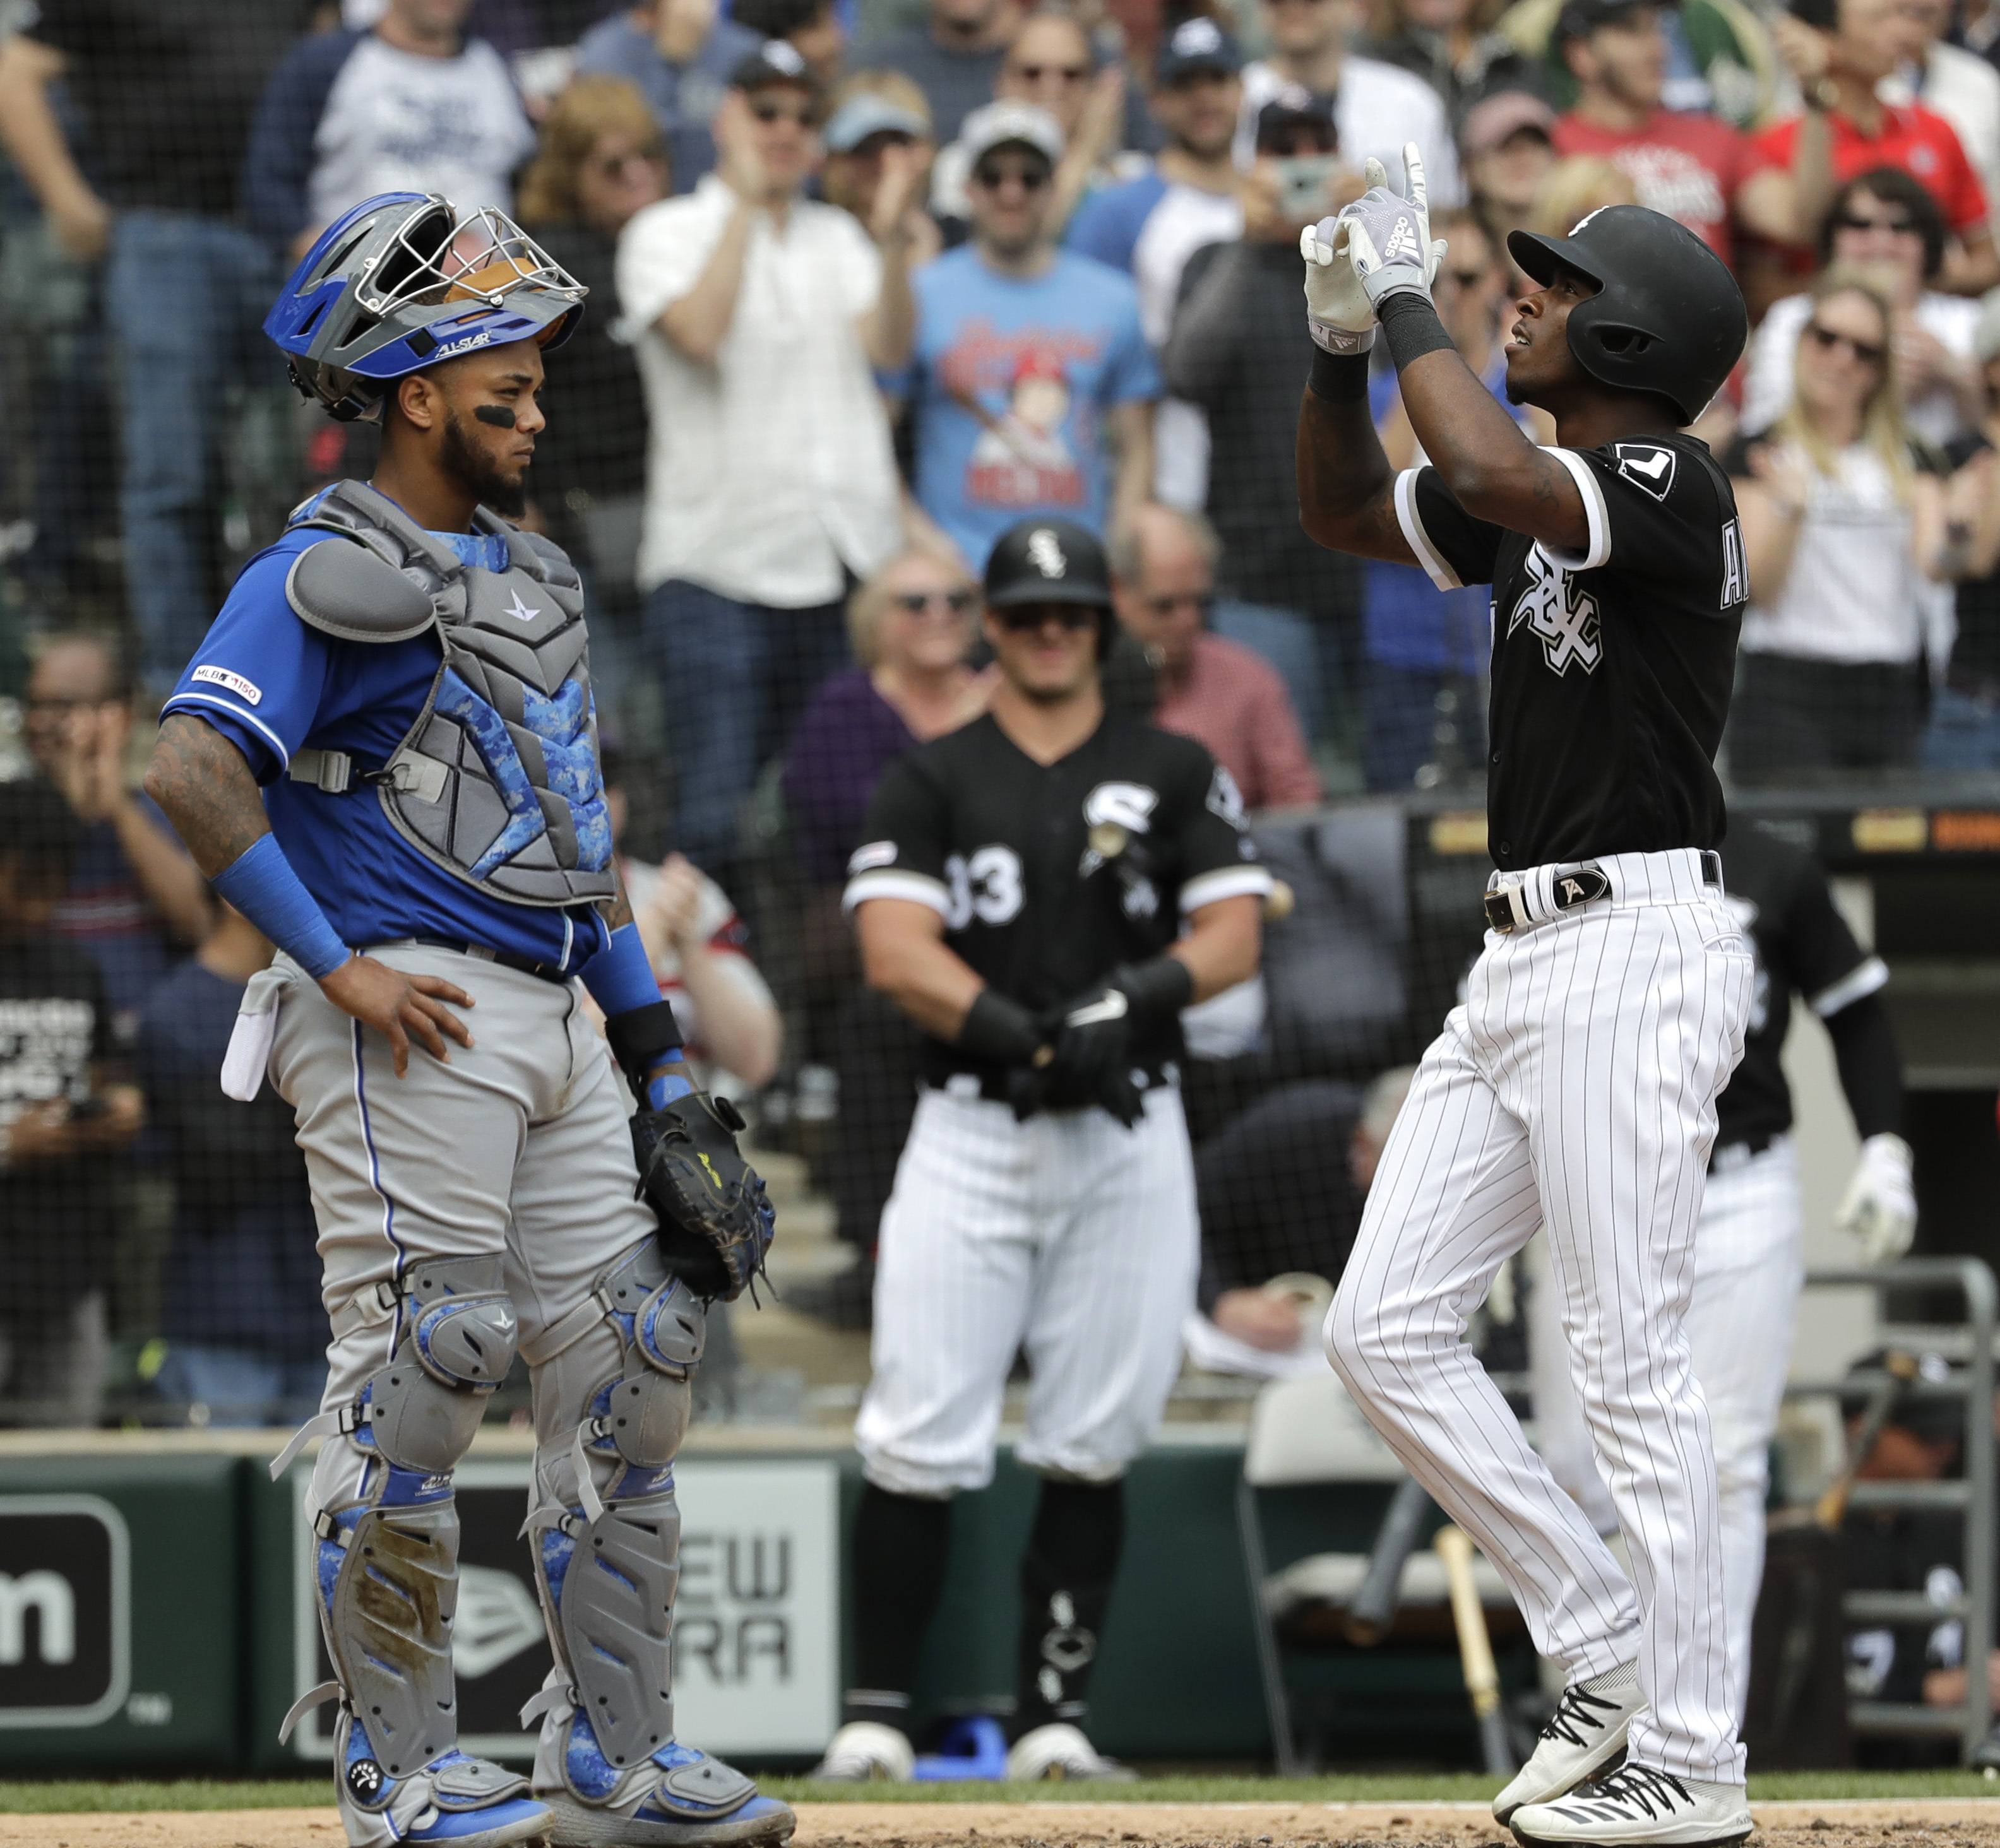 Chicago White Sox's Tim Anderson, right, celebrates after hitting a two-run home run as Kansas City Royals catcher Martin Maldonado looks to the field during the fourth inning of a baseball game in Chicago, Wednesday, April 17, 2019. (AP Photo/Nam Y. Huh)